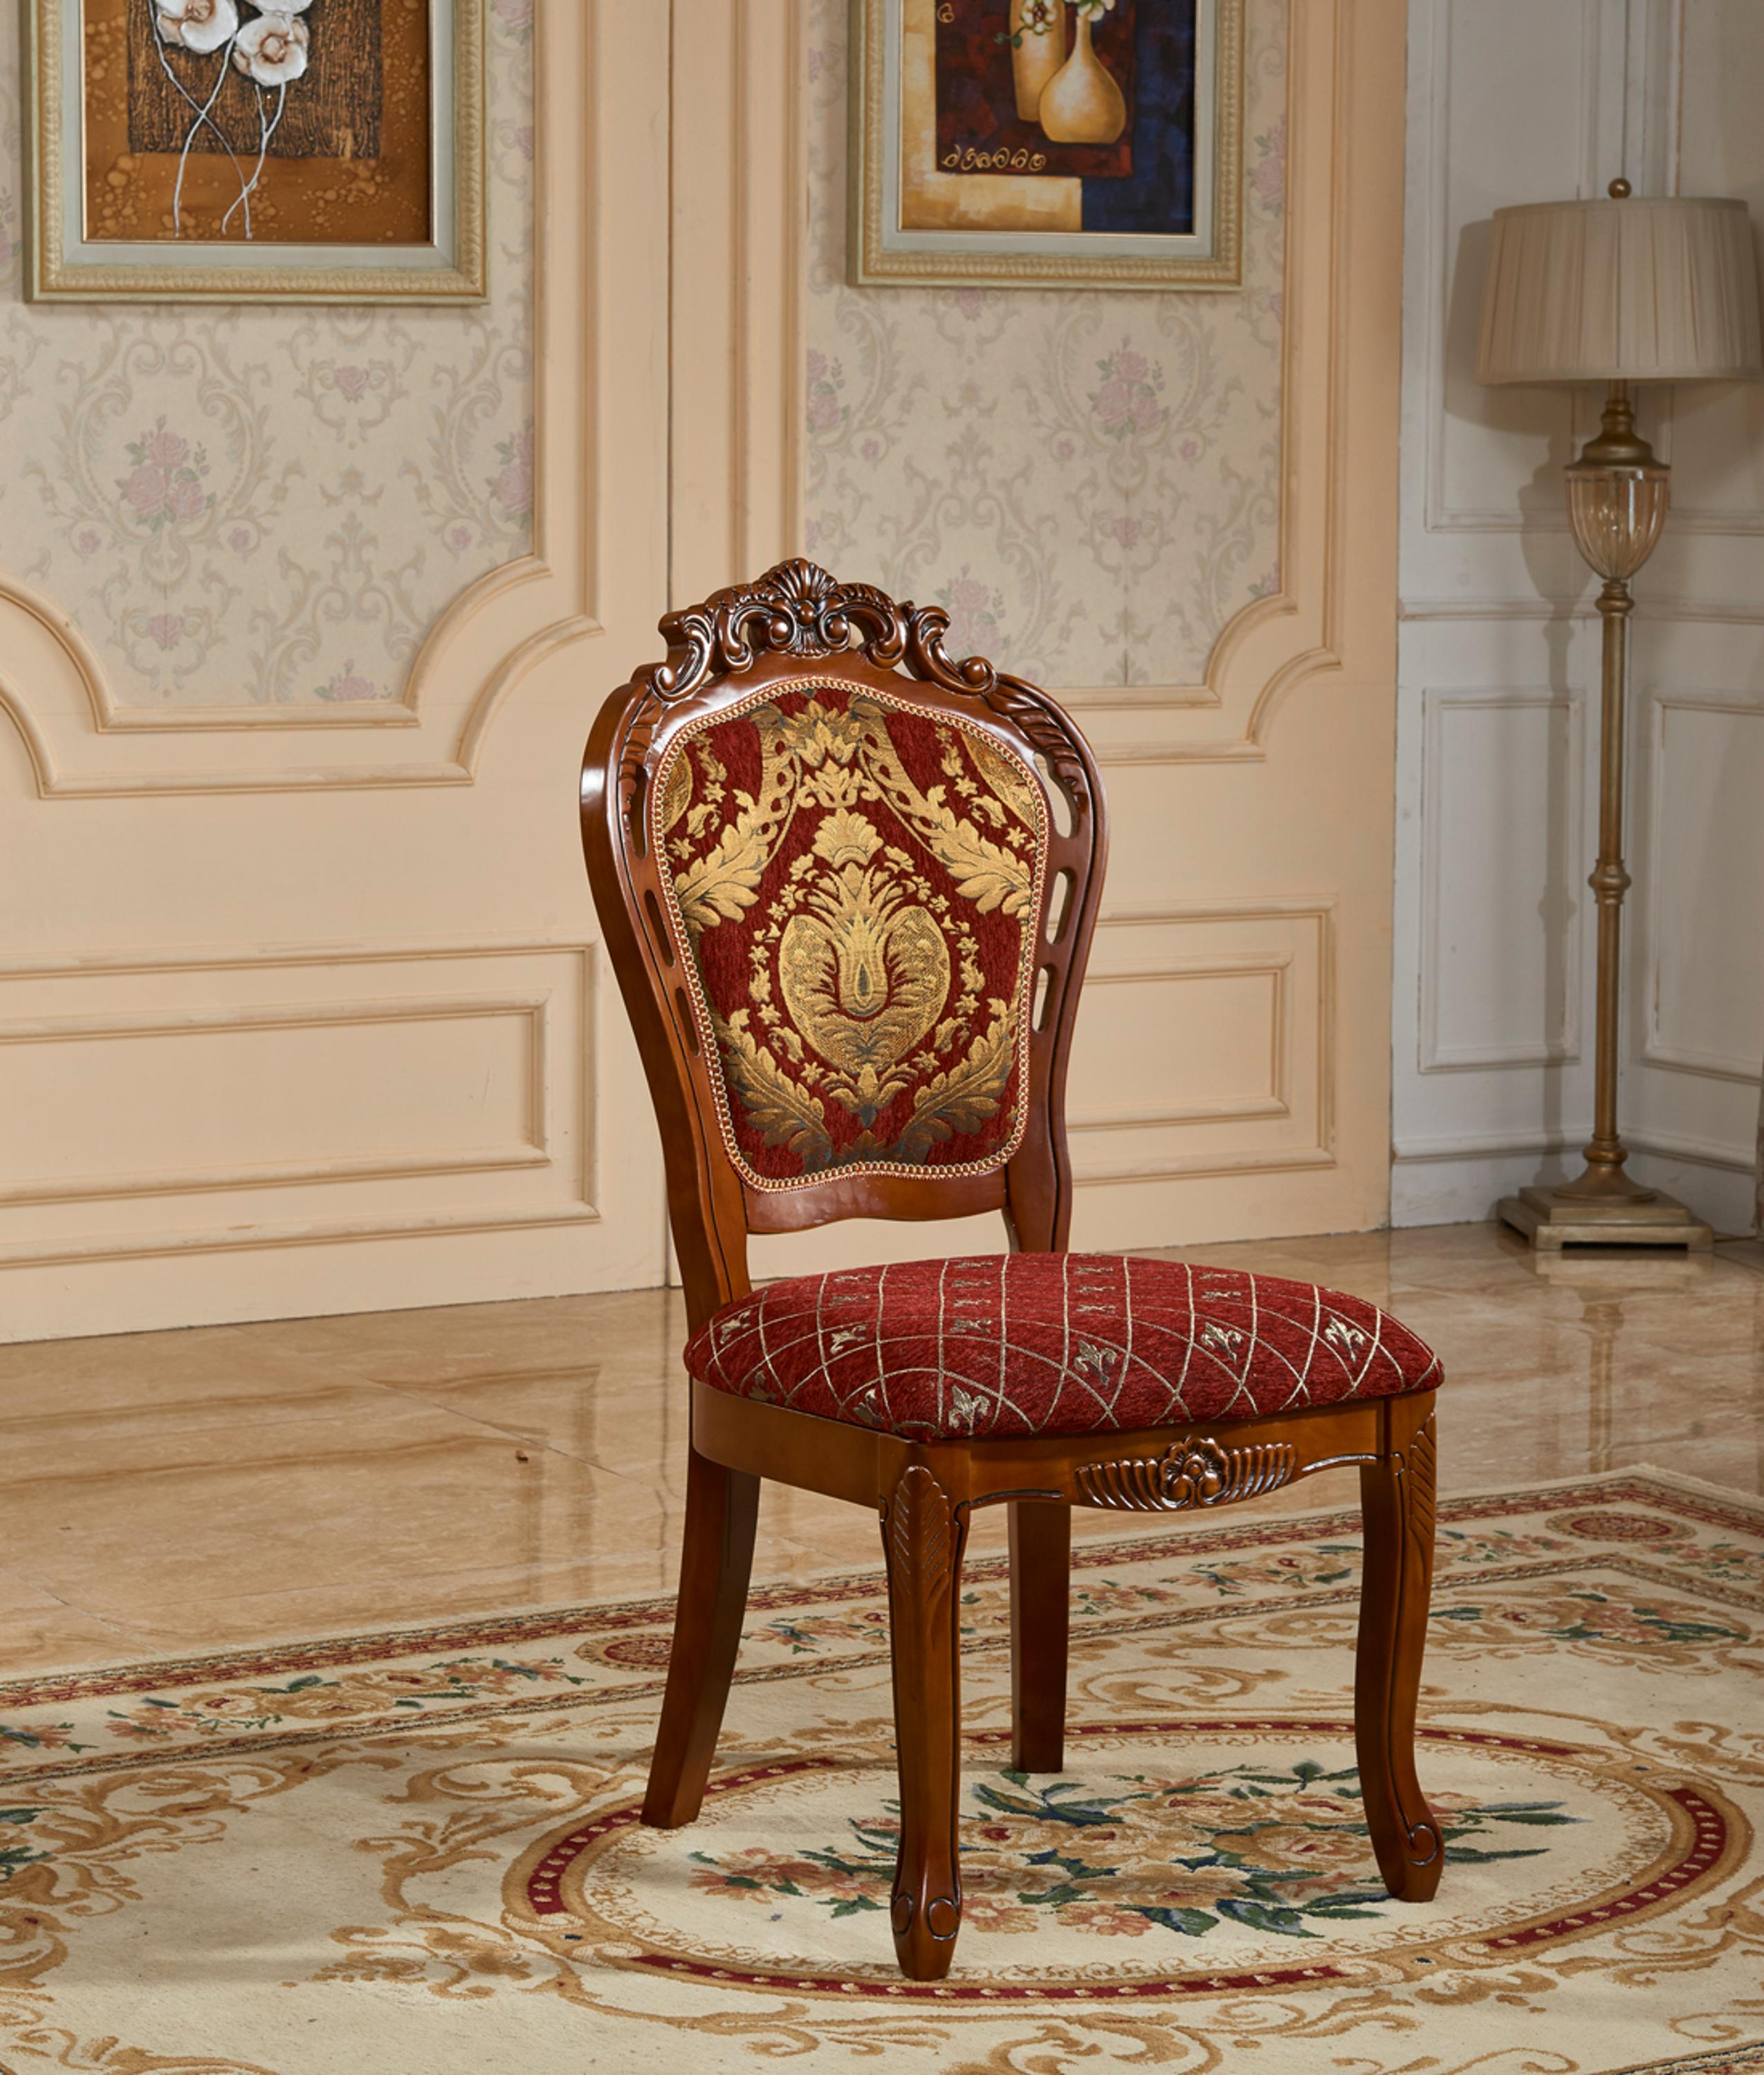 Cheap Wood Dining Chairs: Hot Selling Wholesale Cheap Price Luxury Antique Wood